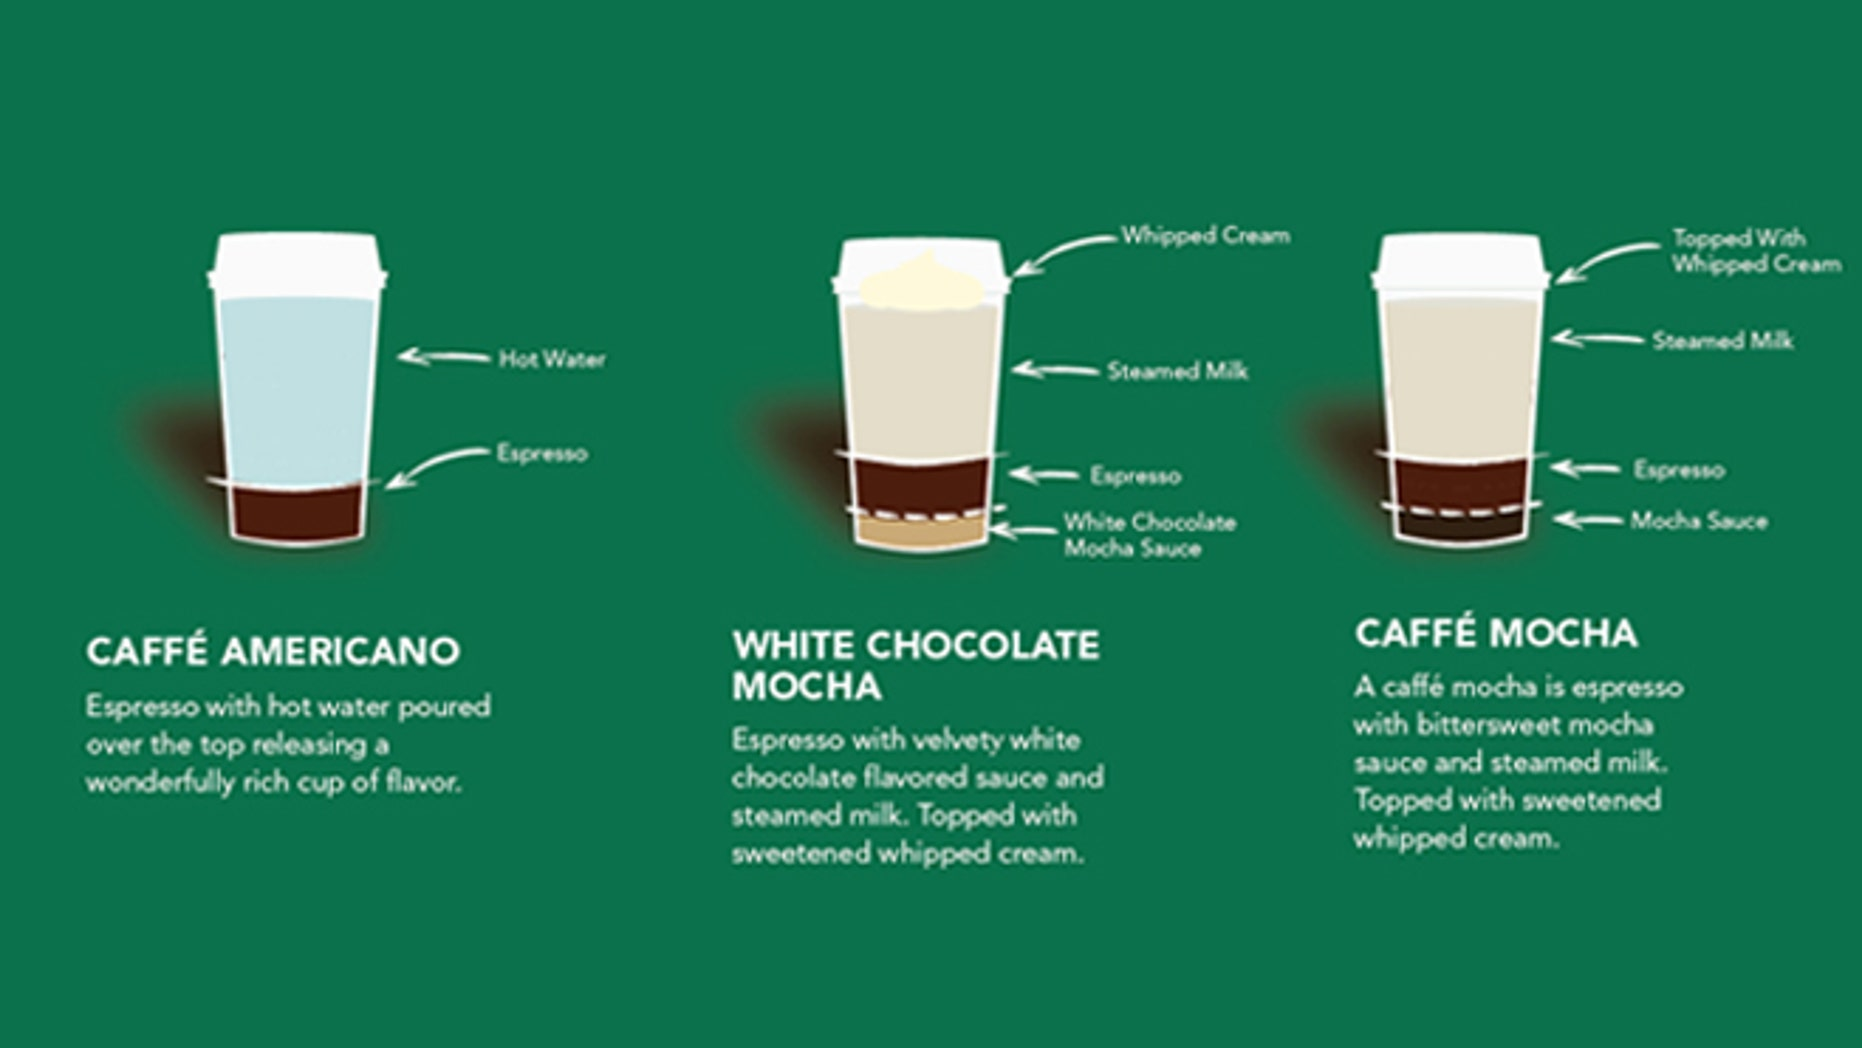 What's in your favorite Starbucks coffee drink?